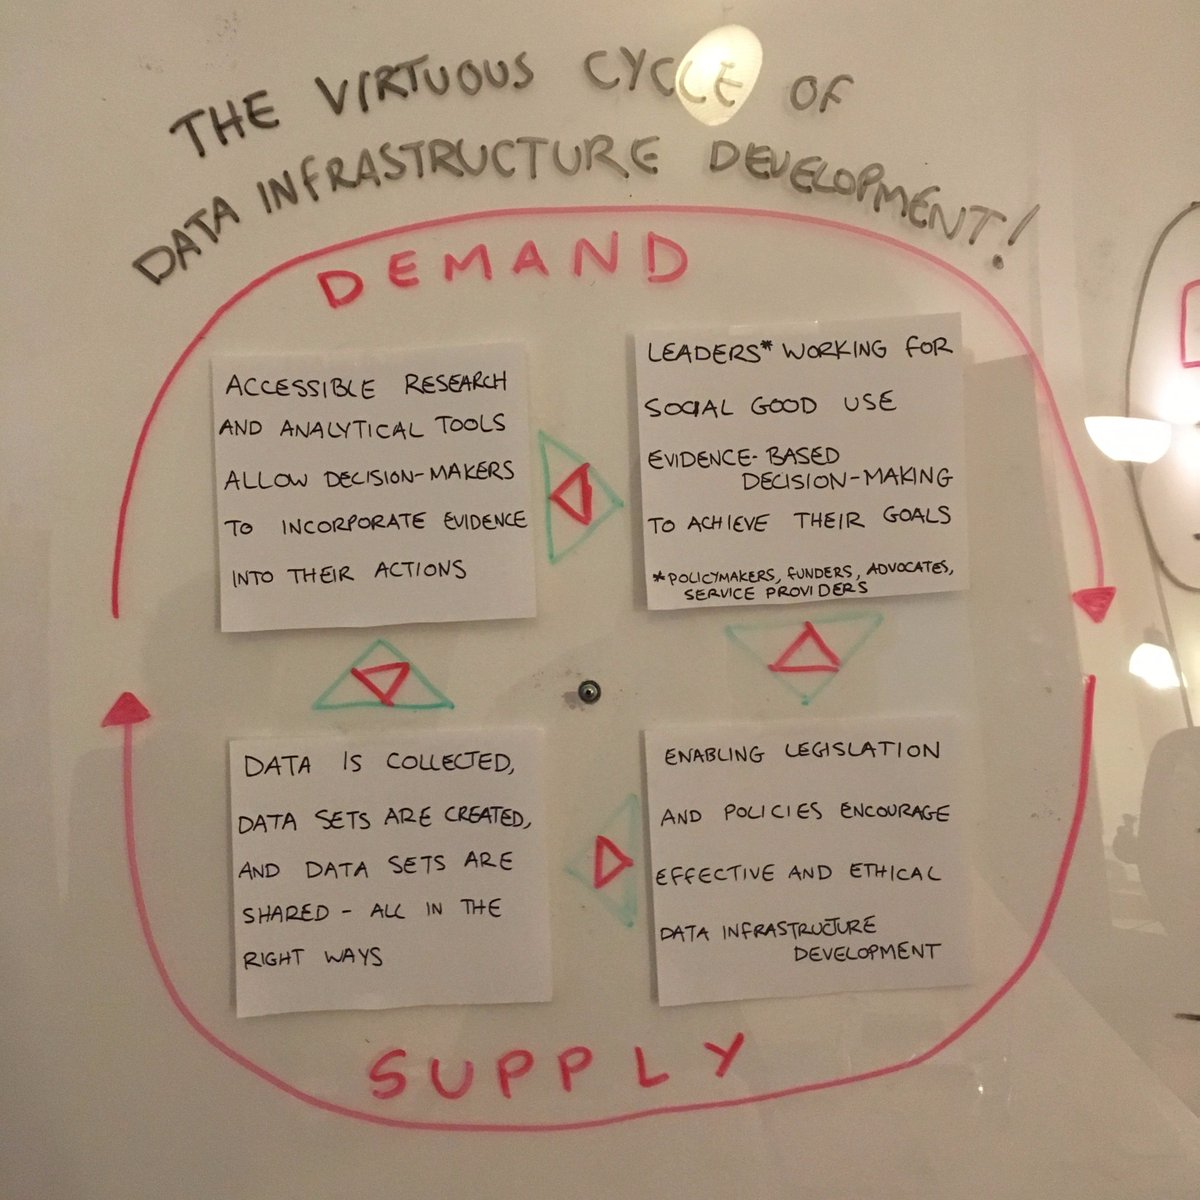 The Virtuous Cycle of Data Infrastructure Development